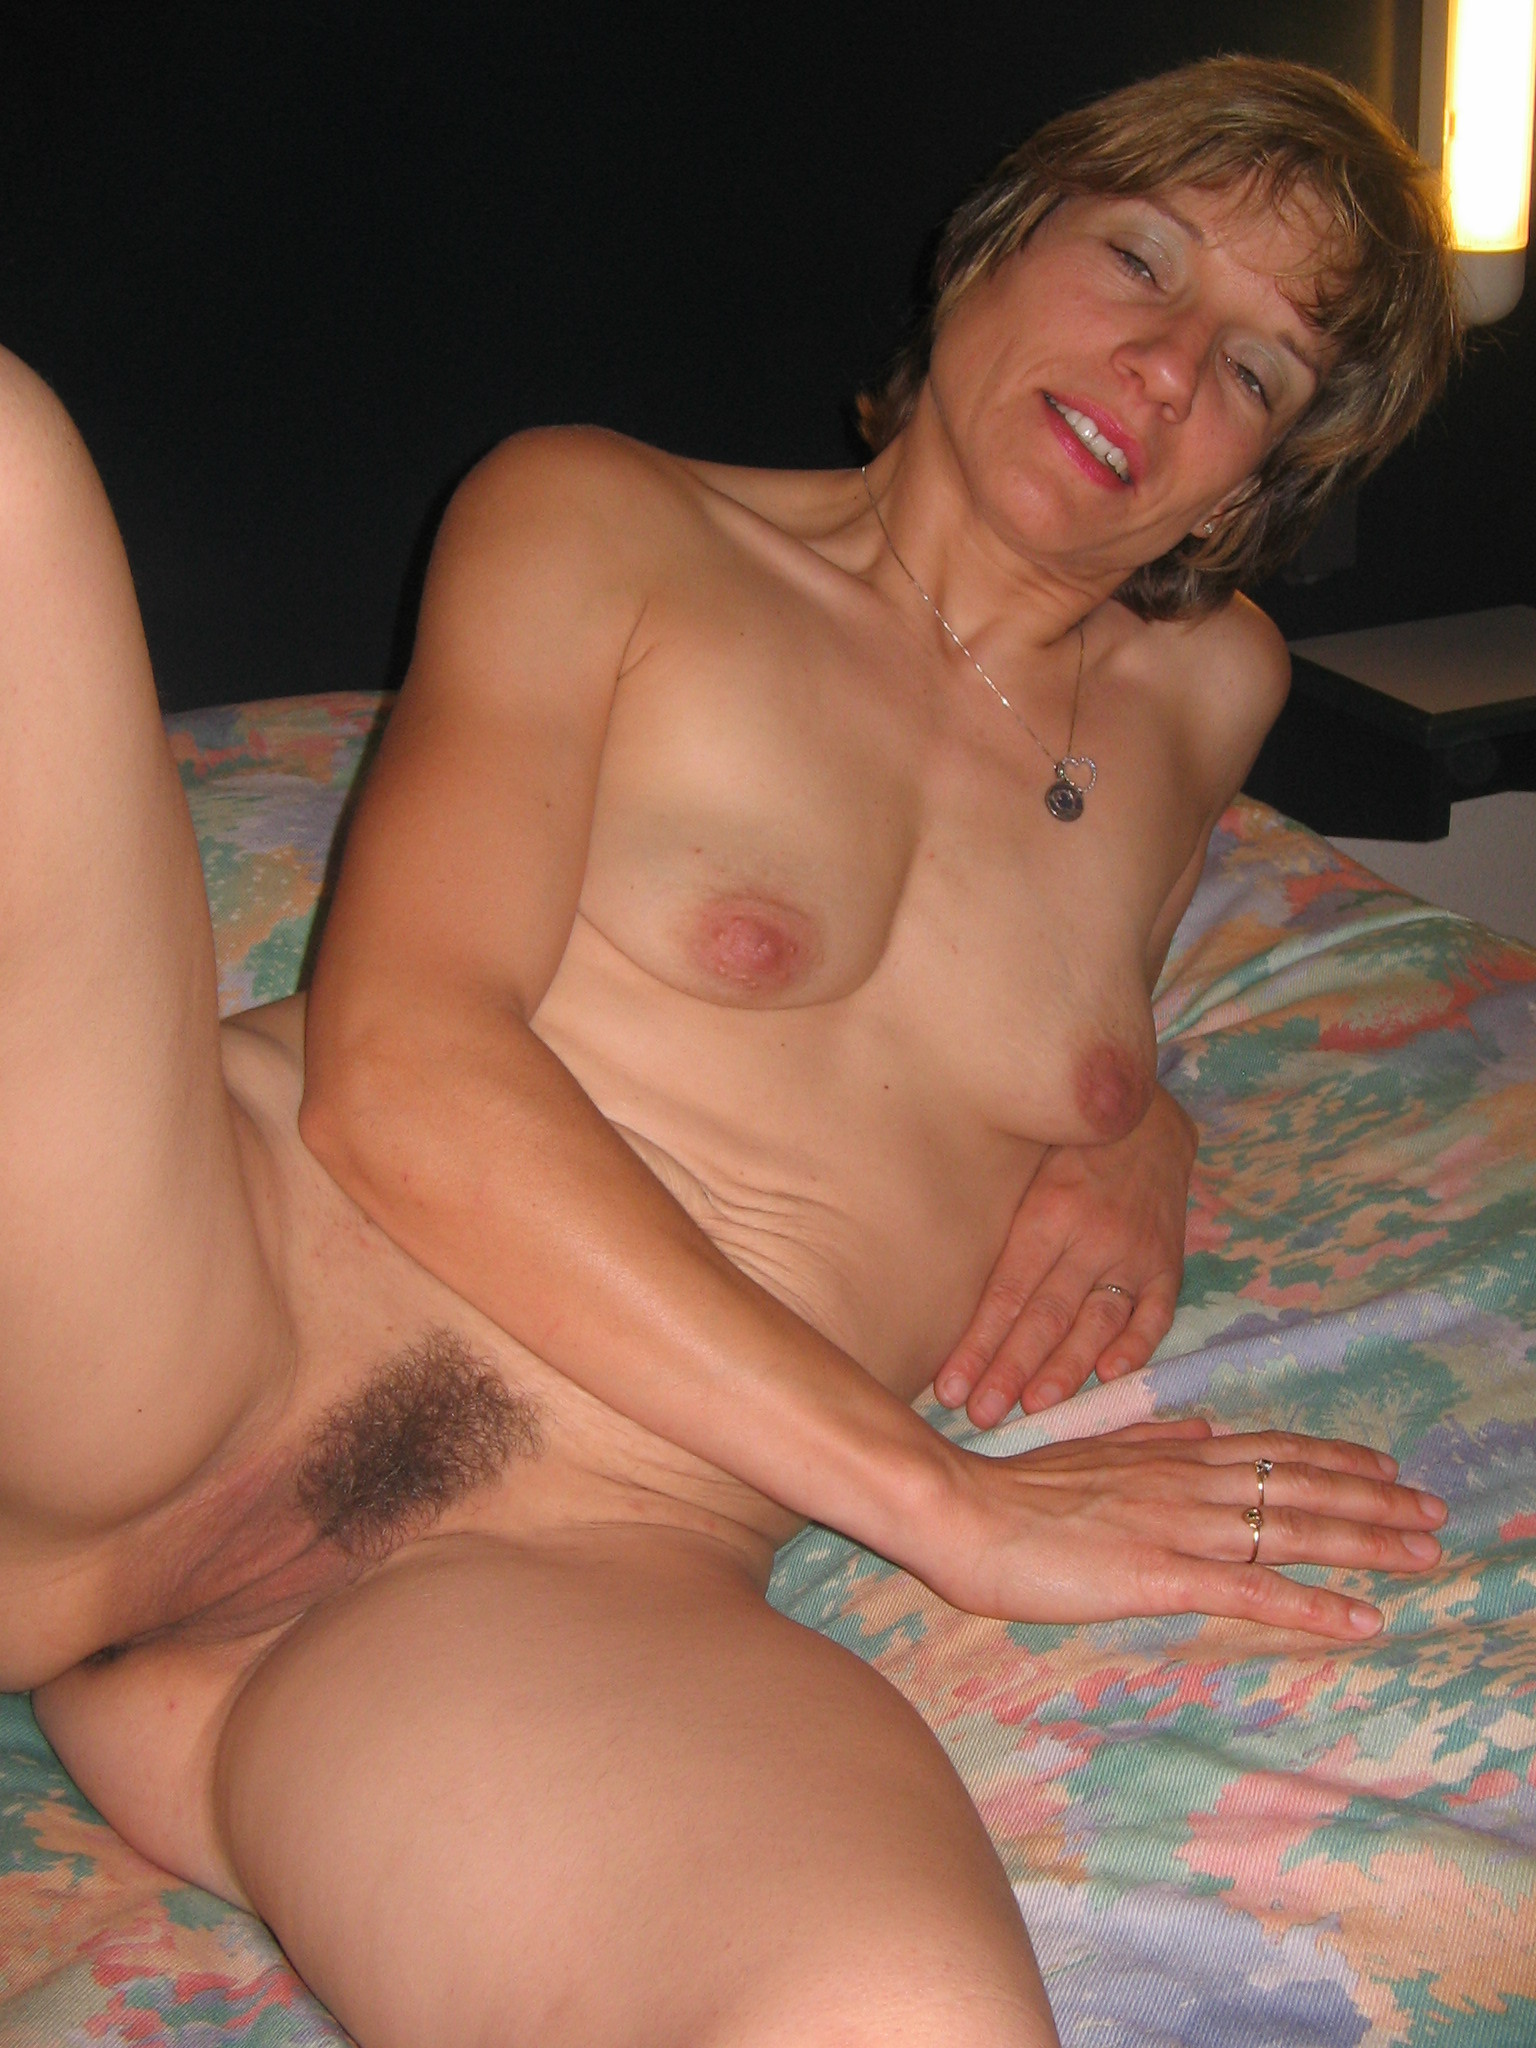 Asian nude pussy